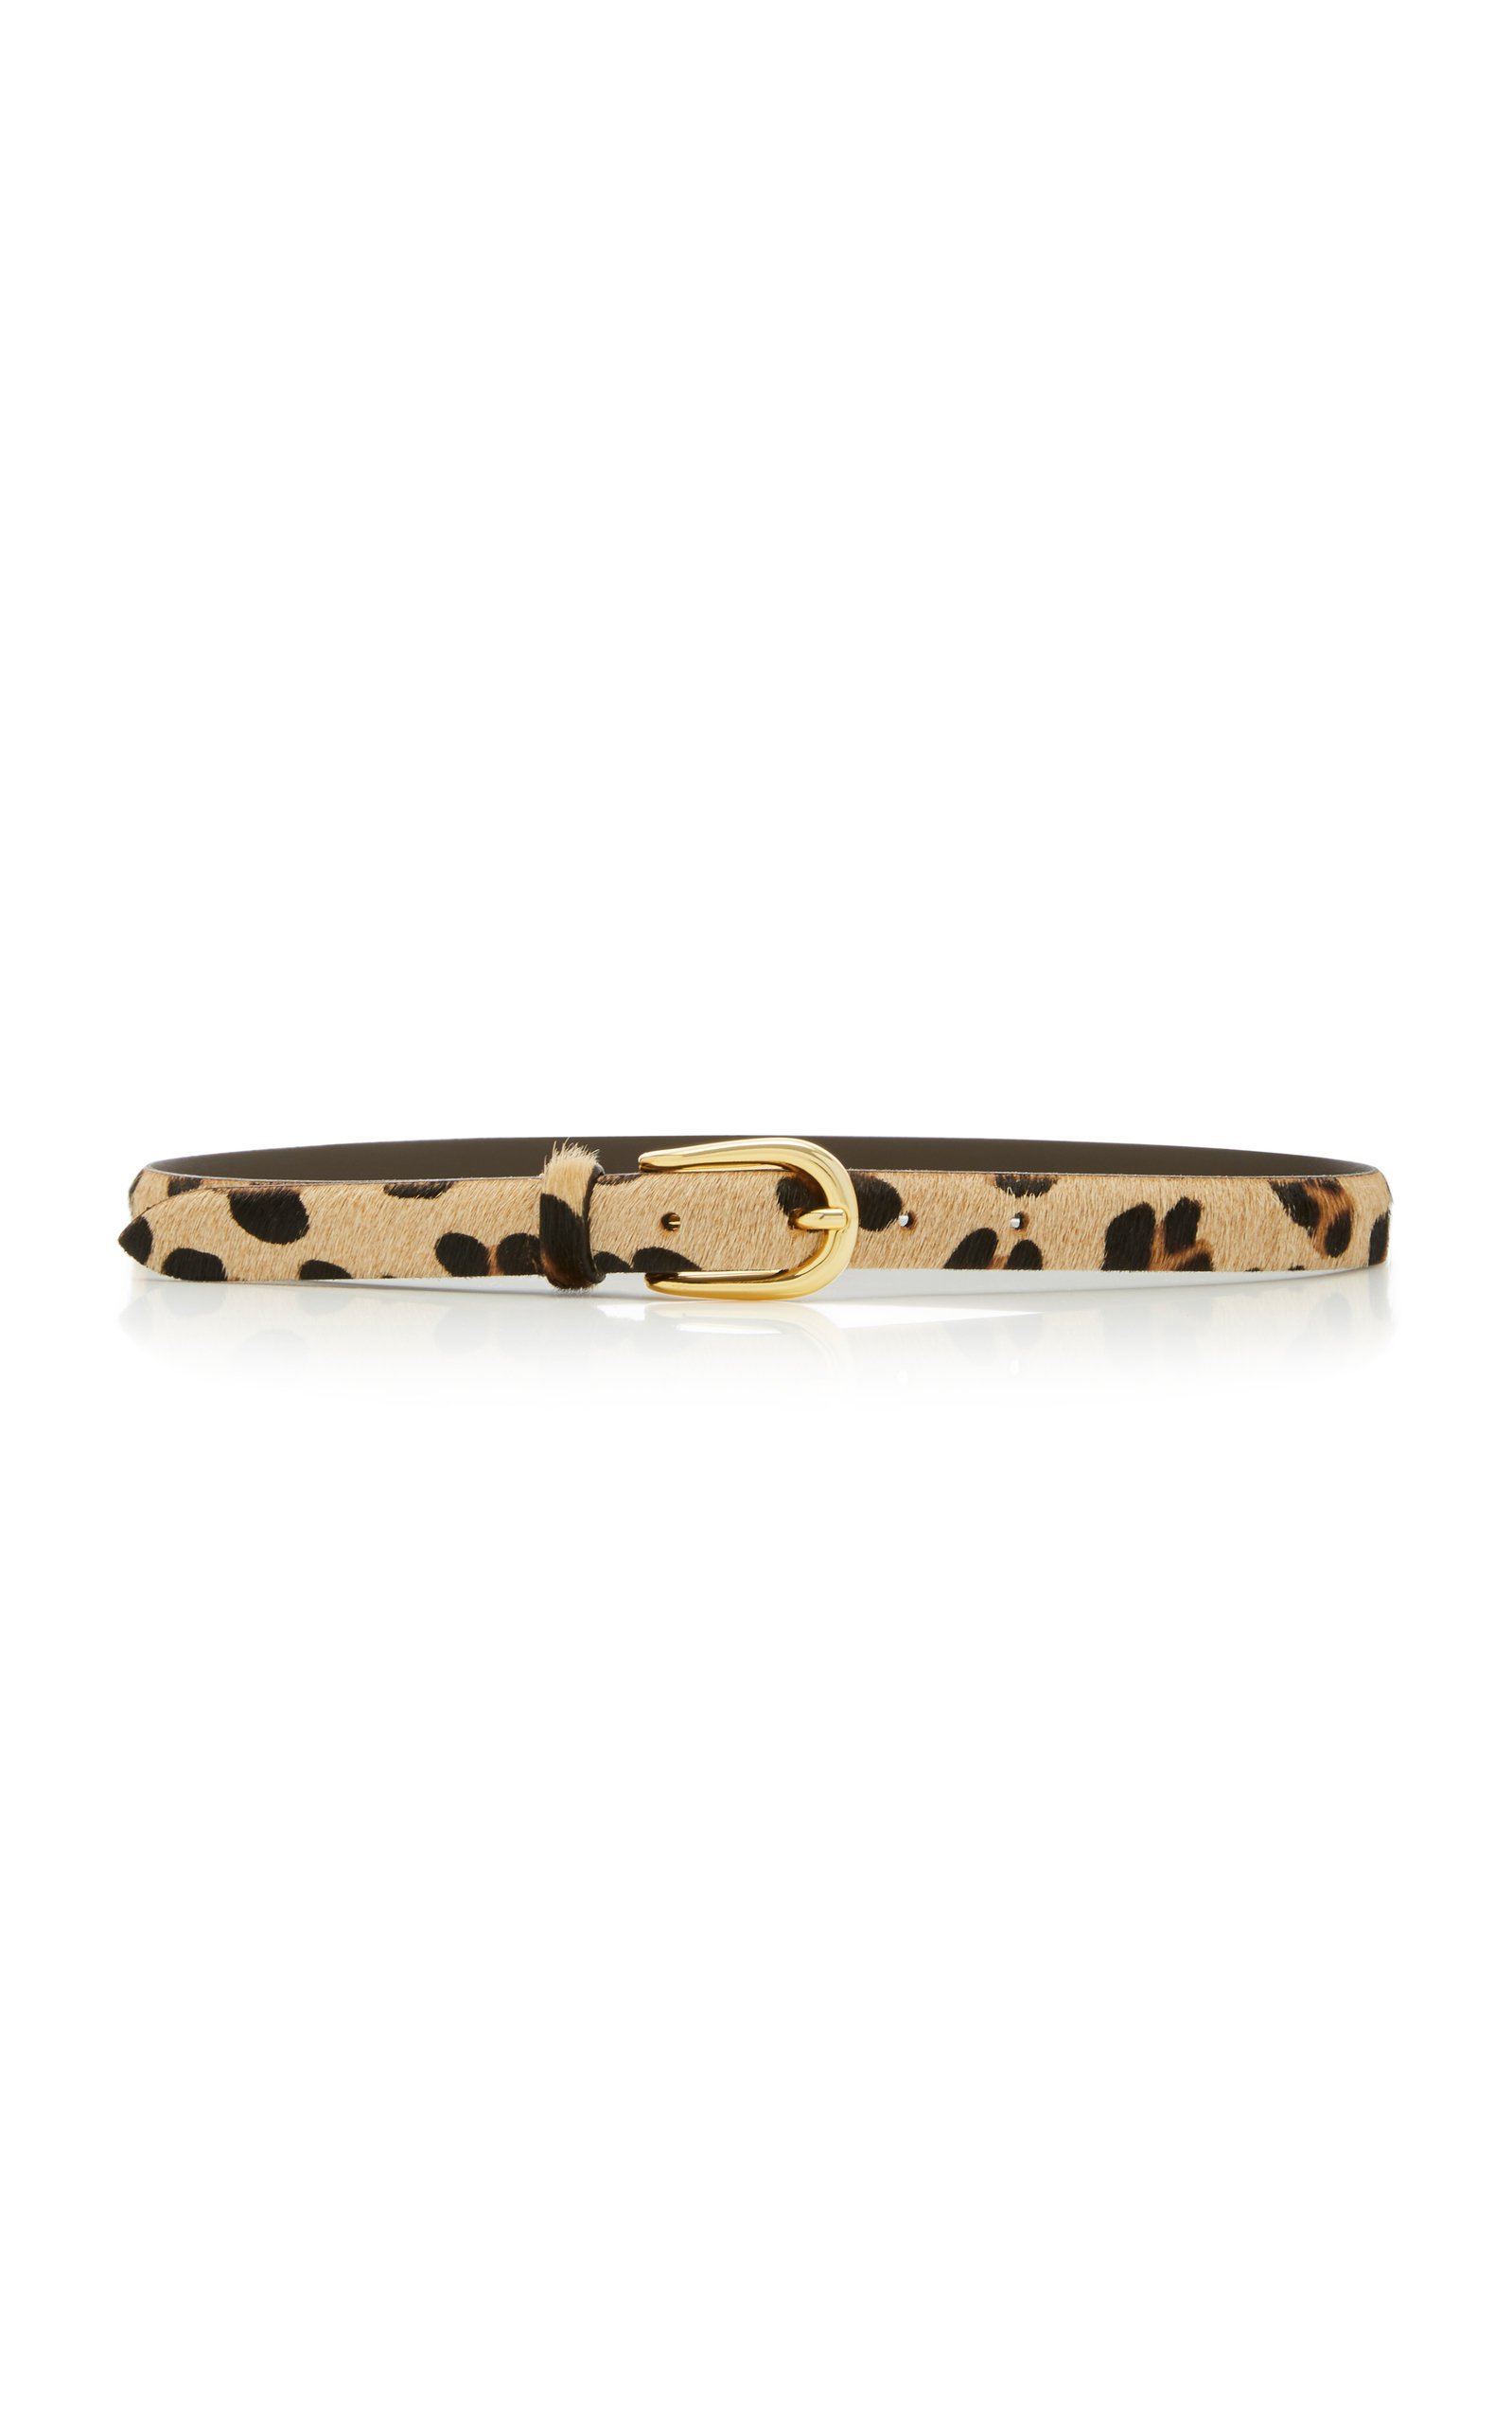 Anderson's Animal-Print Leather Belt Size: 90 cm